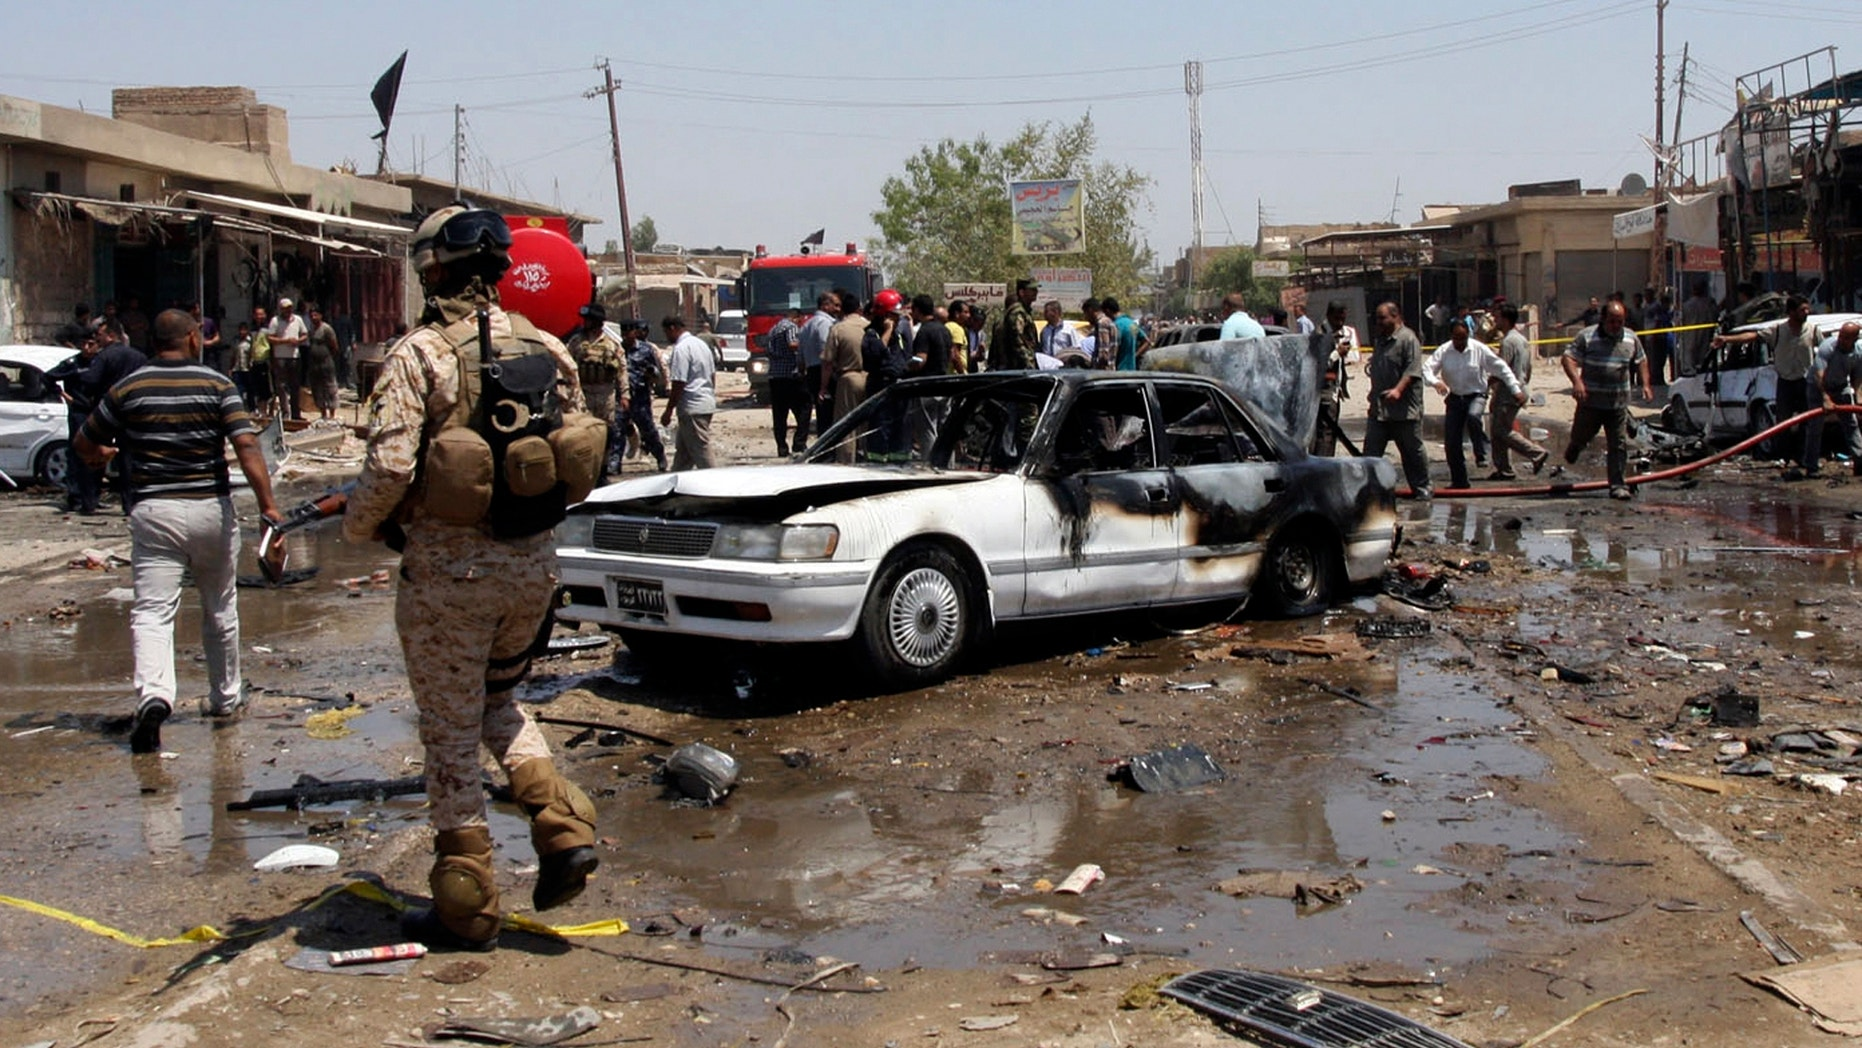 April. 29, 2013 - Civilians and security forces gather at the scene of a car bomb attack in the southern Shiite city of Karbala, south of Baghdad, Iraq.